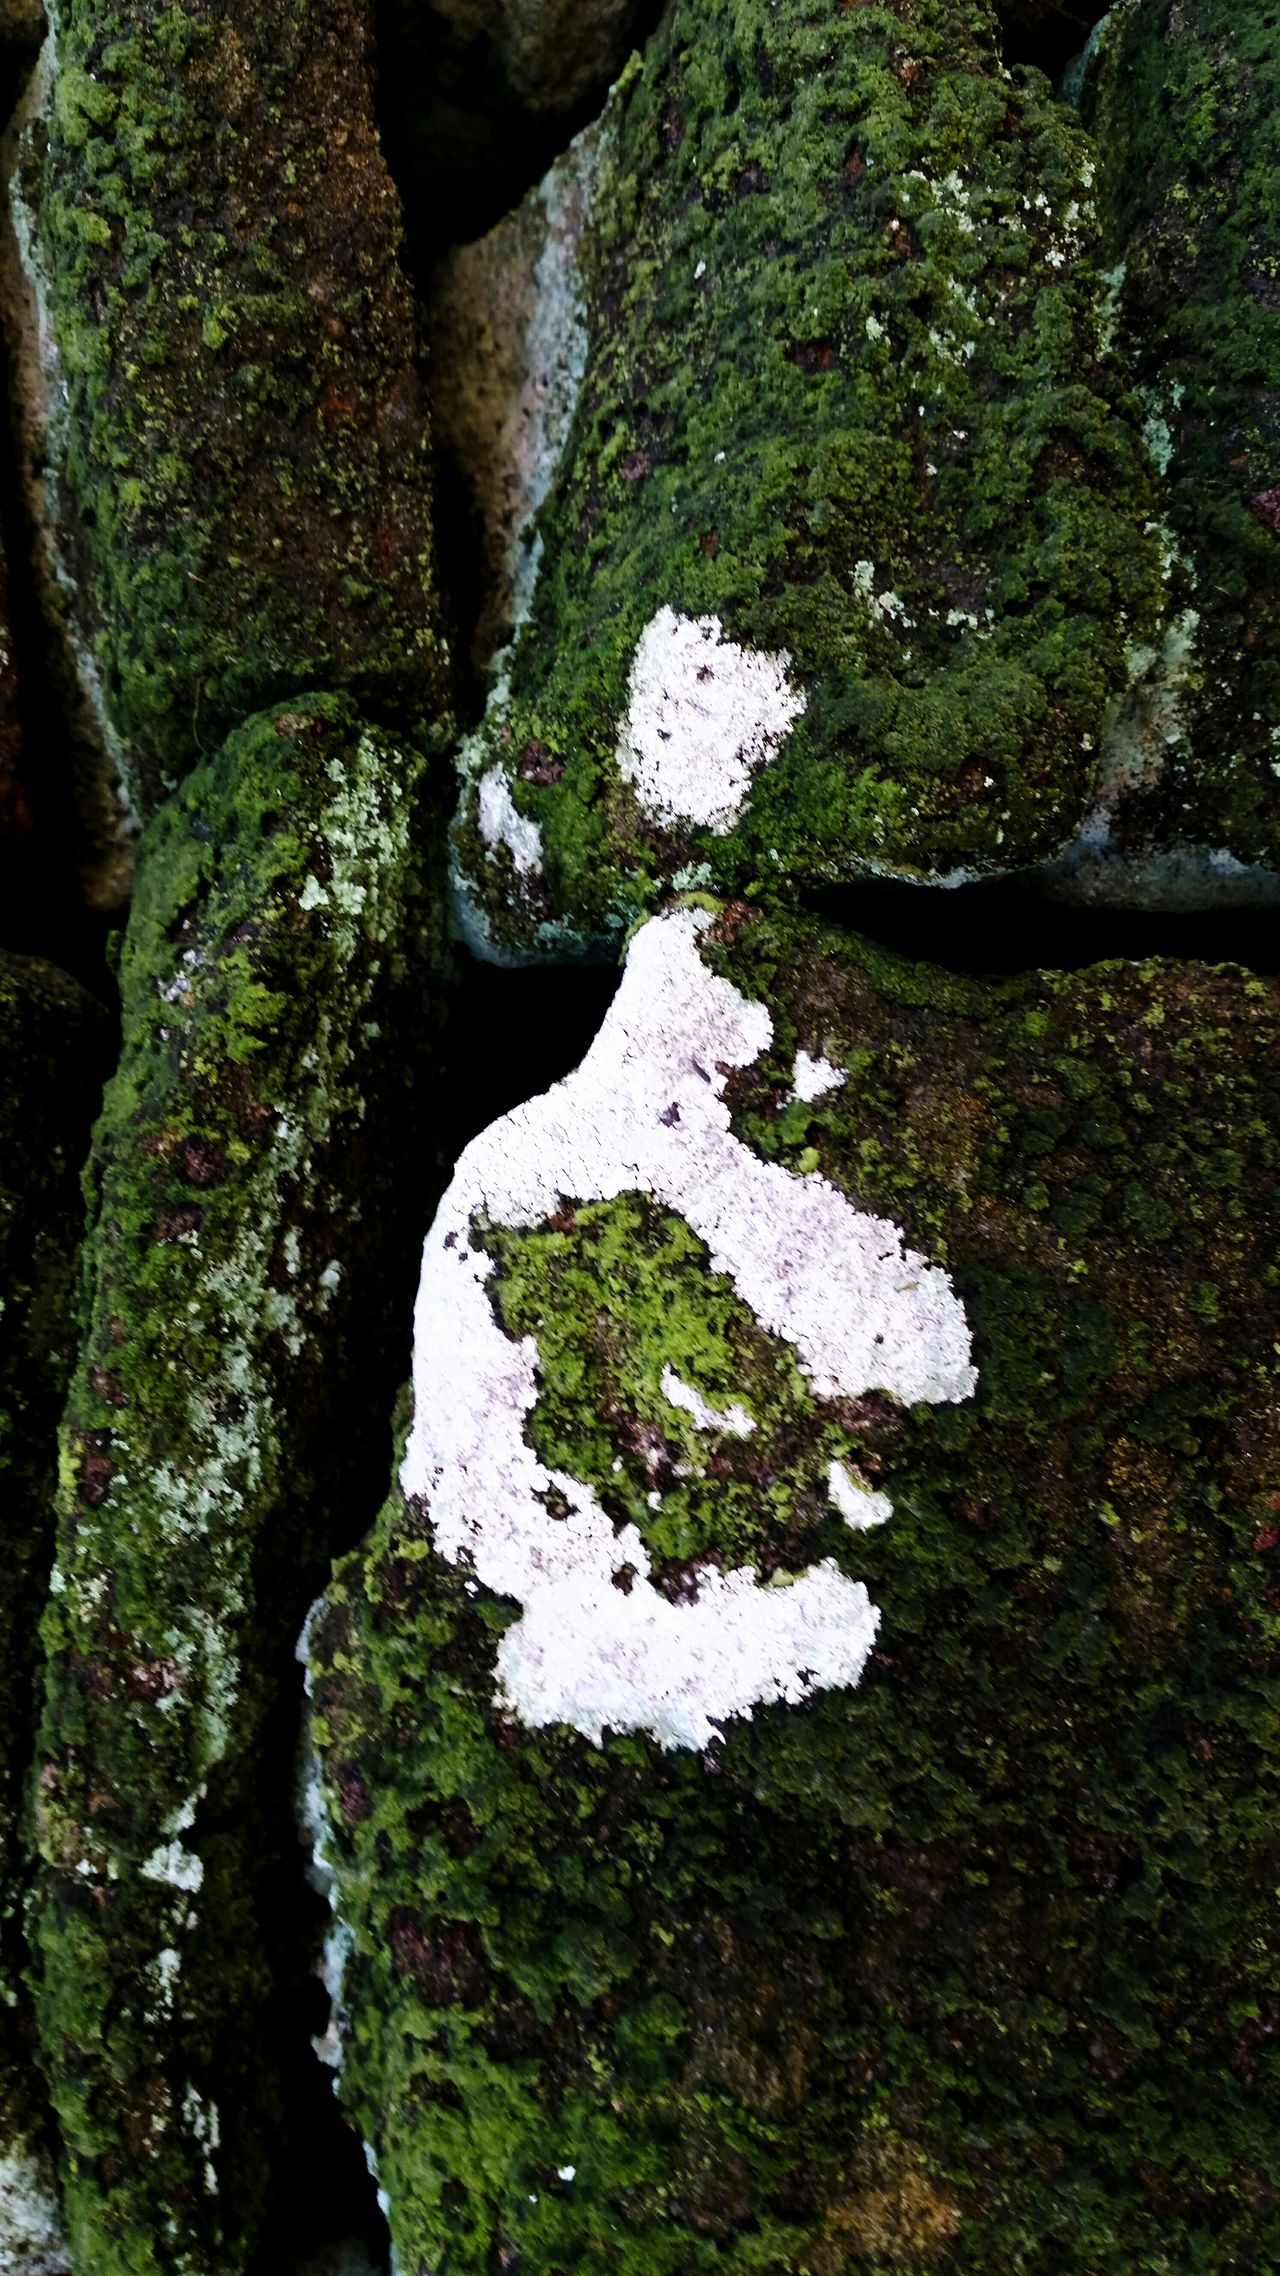 Outdoors Eyem Nature Lovers  Eyemphotography Eyem Gallery Green Color Gritstone Lychen Moss & Lichen Moss Close Up Moss-covered Mossy Stone